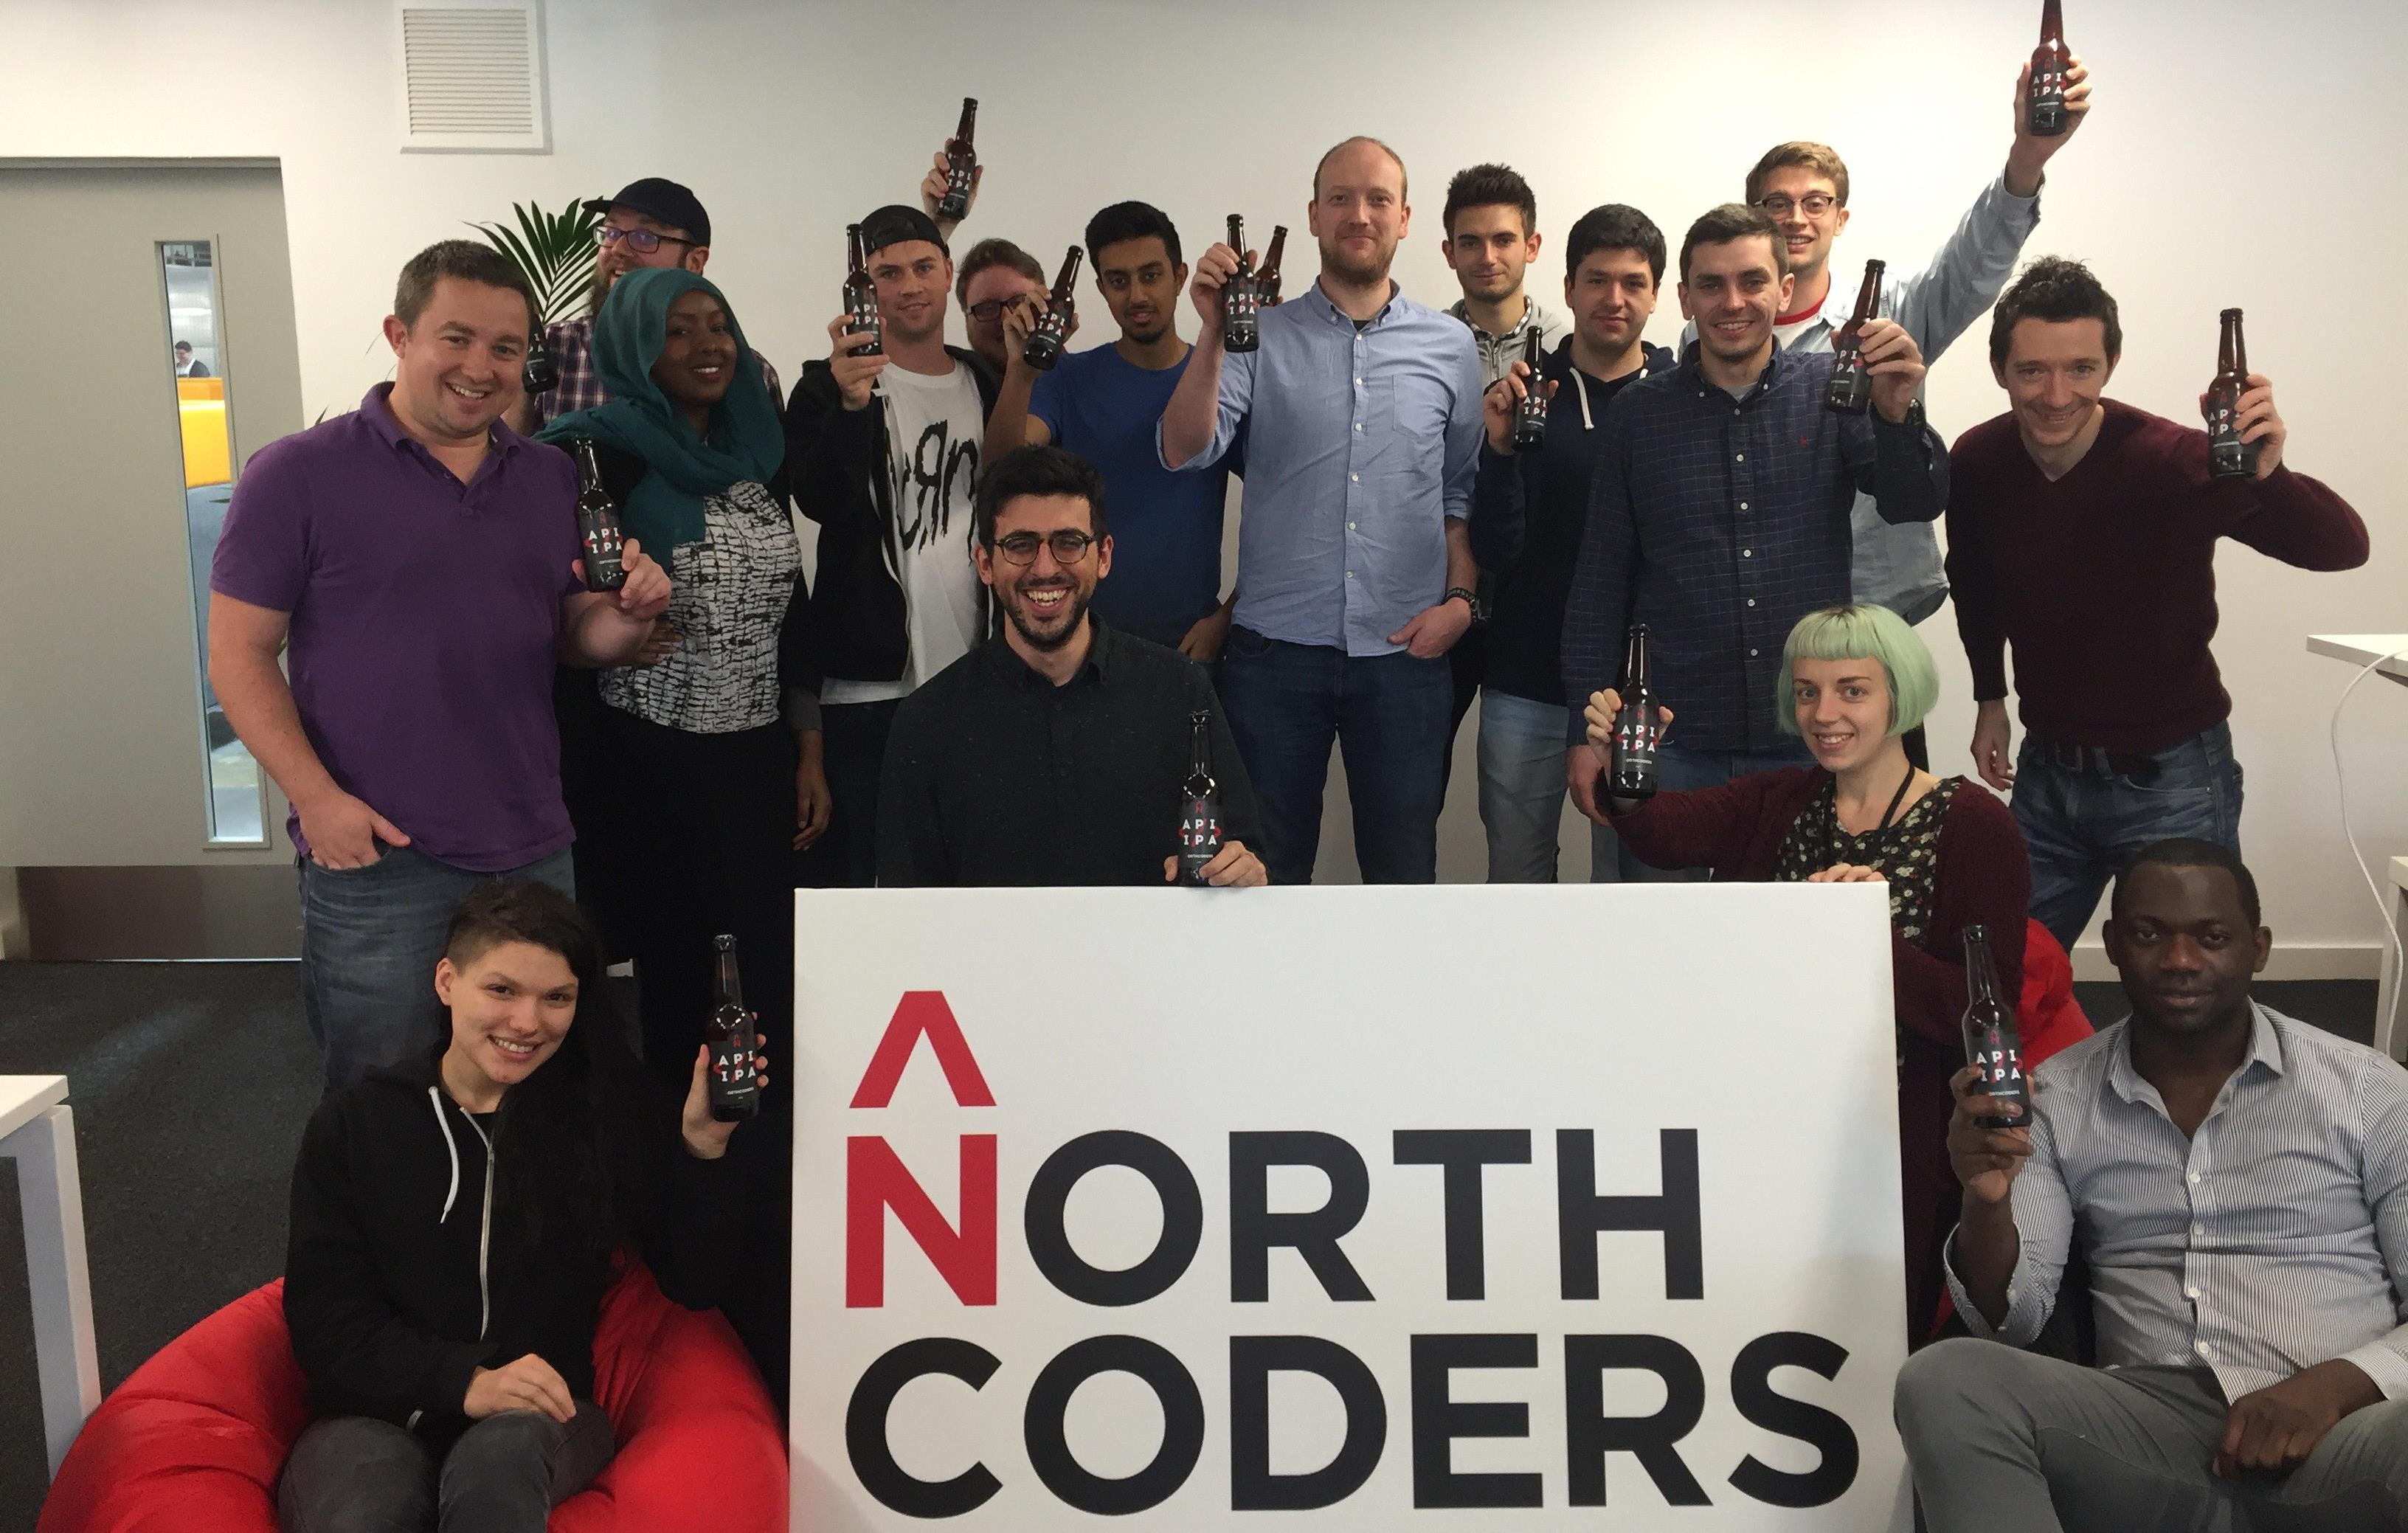 Cohort 2 graduates from Full-Time Coding Bootcamp Manchester